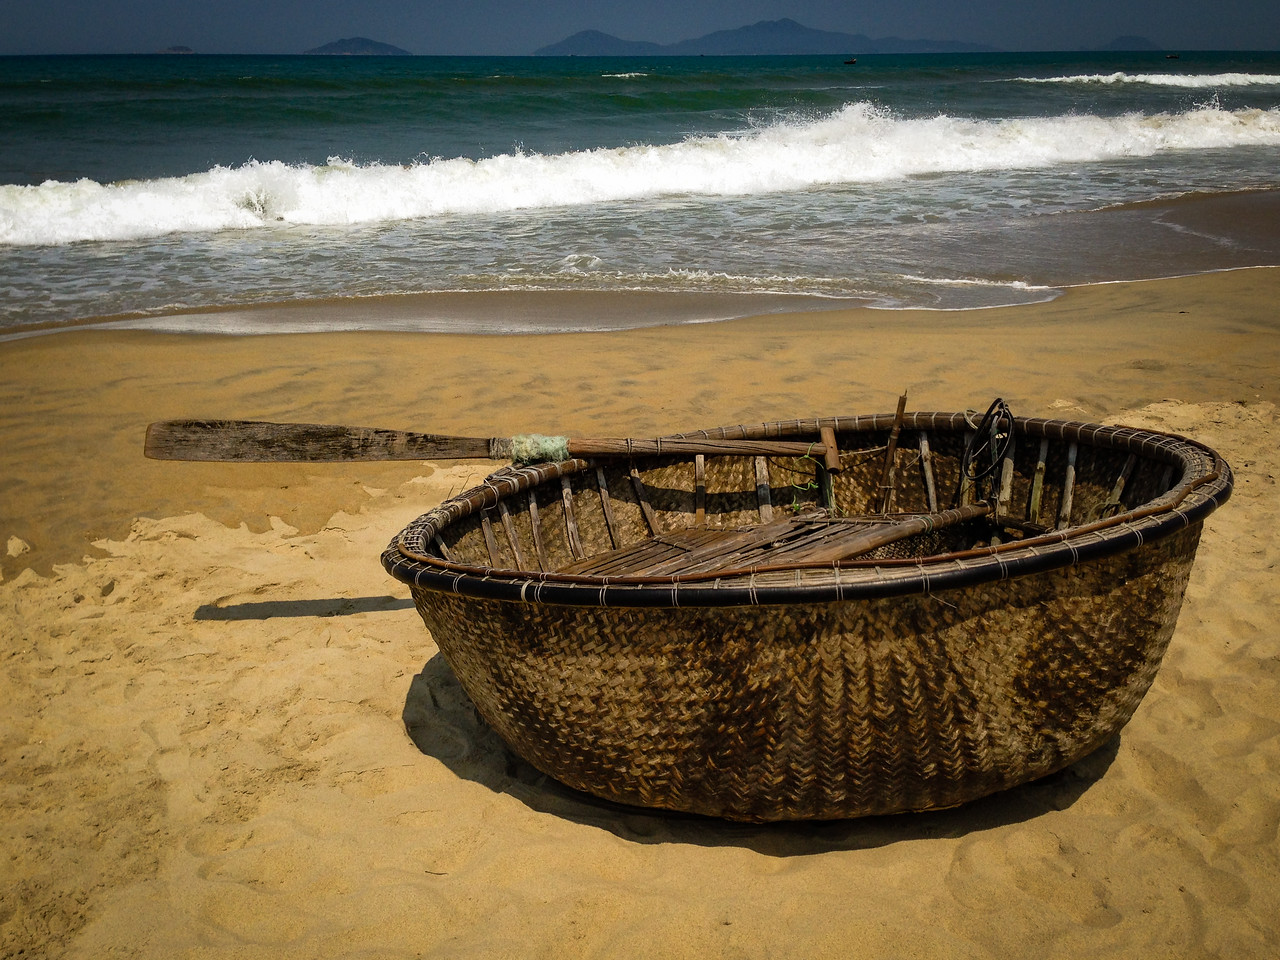 Photo: Basket Boat in Vietnam